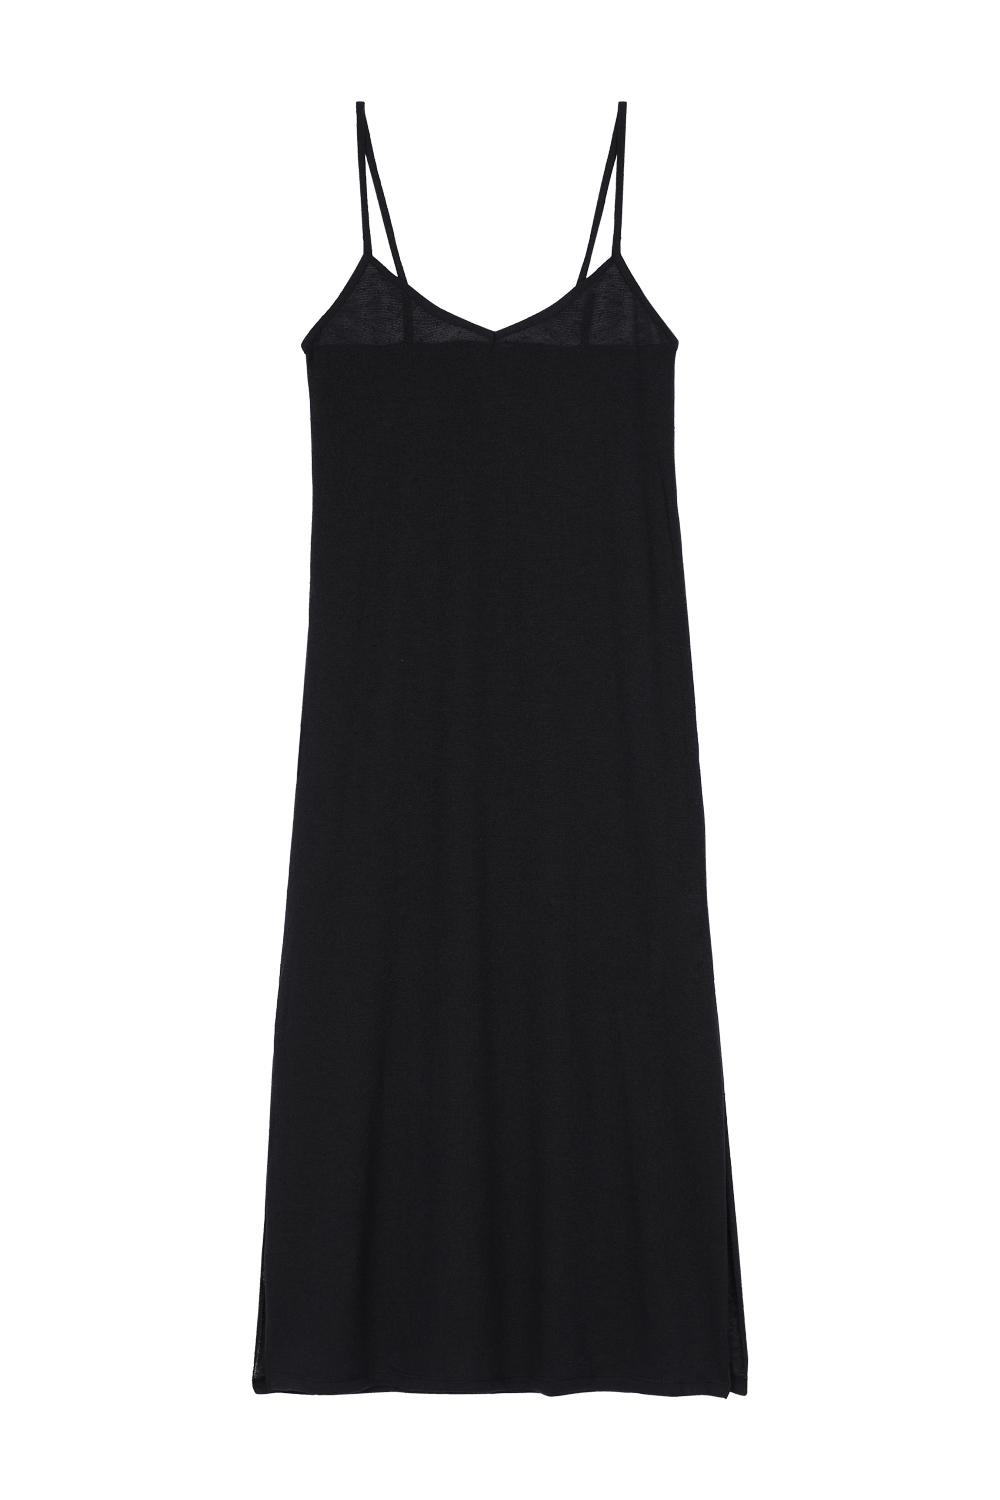 Long Sleeveless Fully-Fashioned Slub Knit Dress